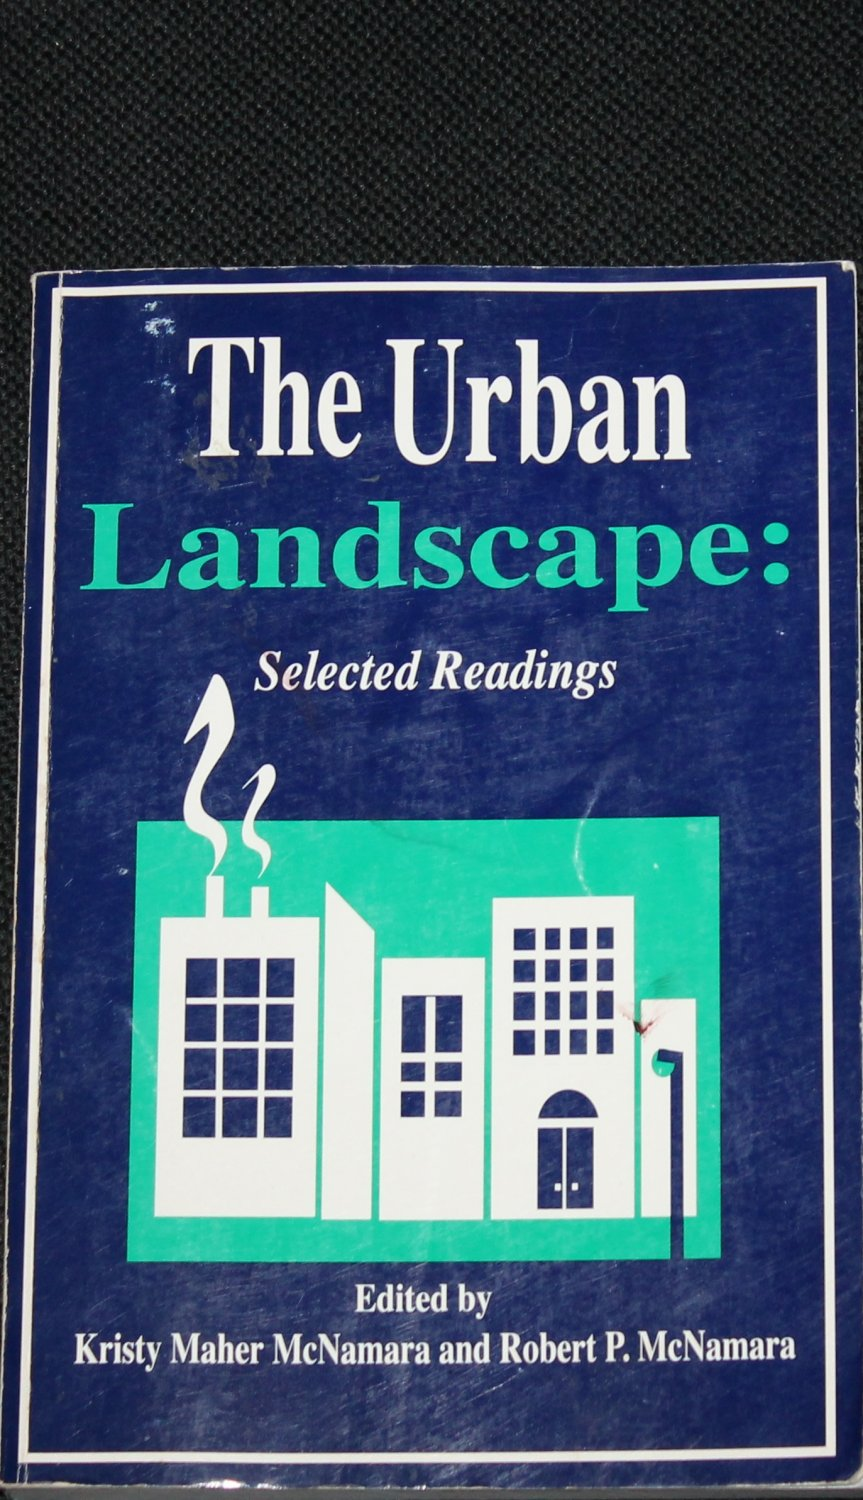 The Urban Landscape essays on ecology selected readings book